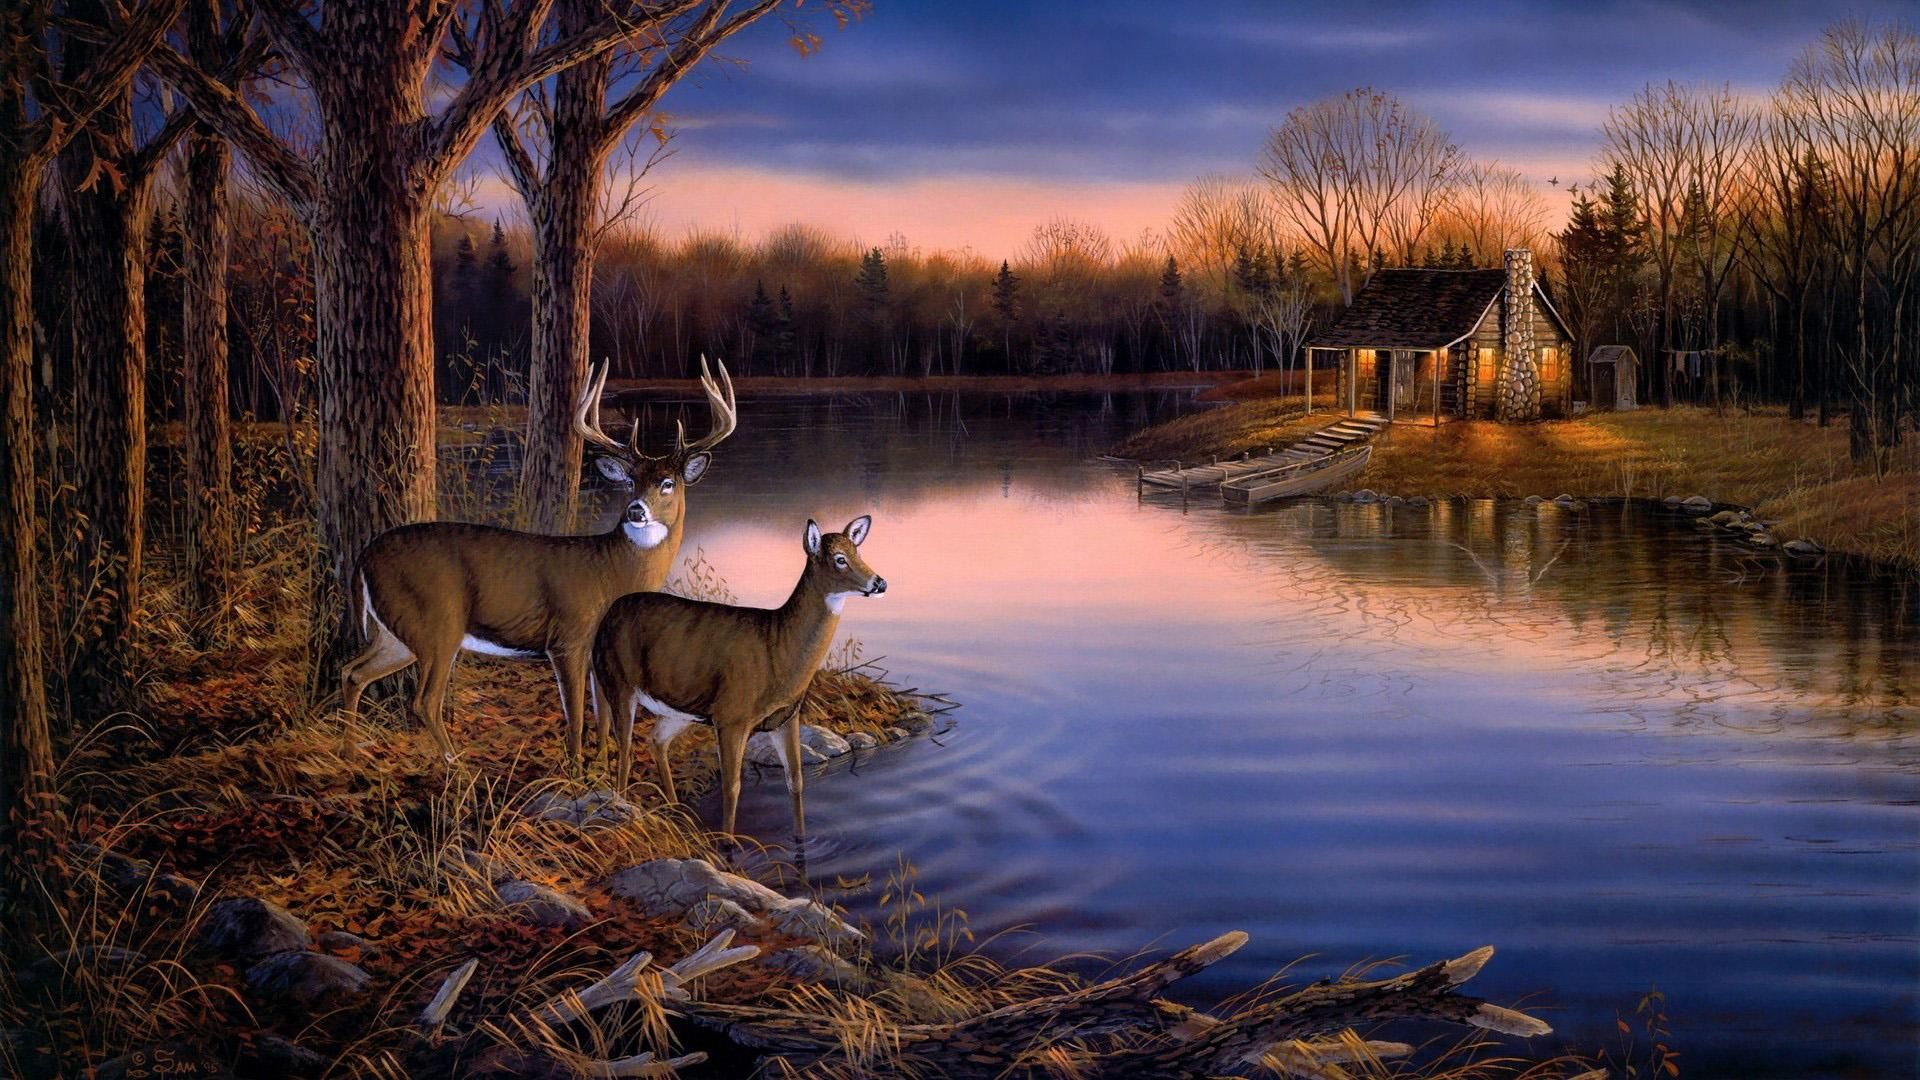 Deer hunting wallpaper border landscape wallpaper for Deer landscape wall mural